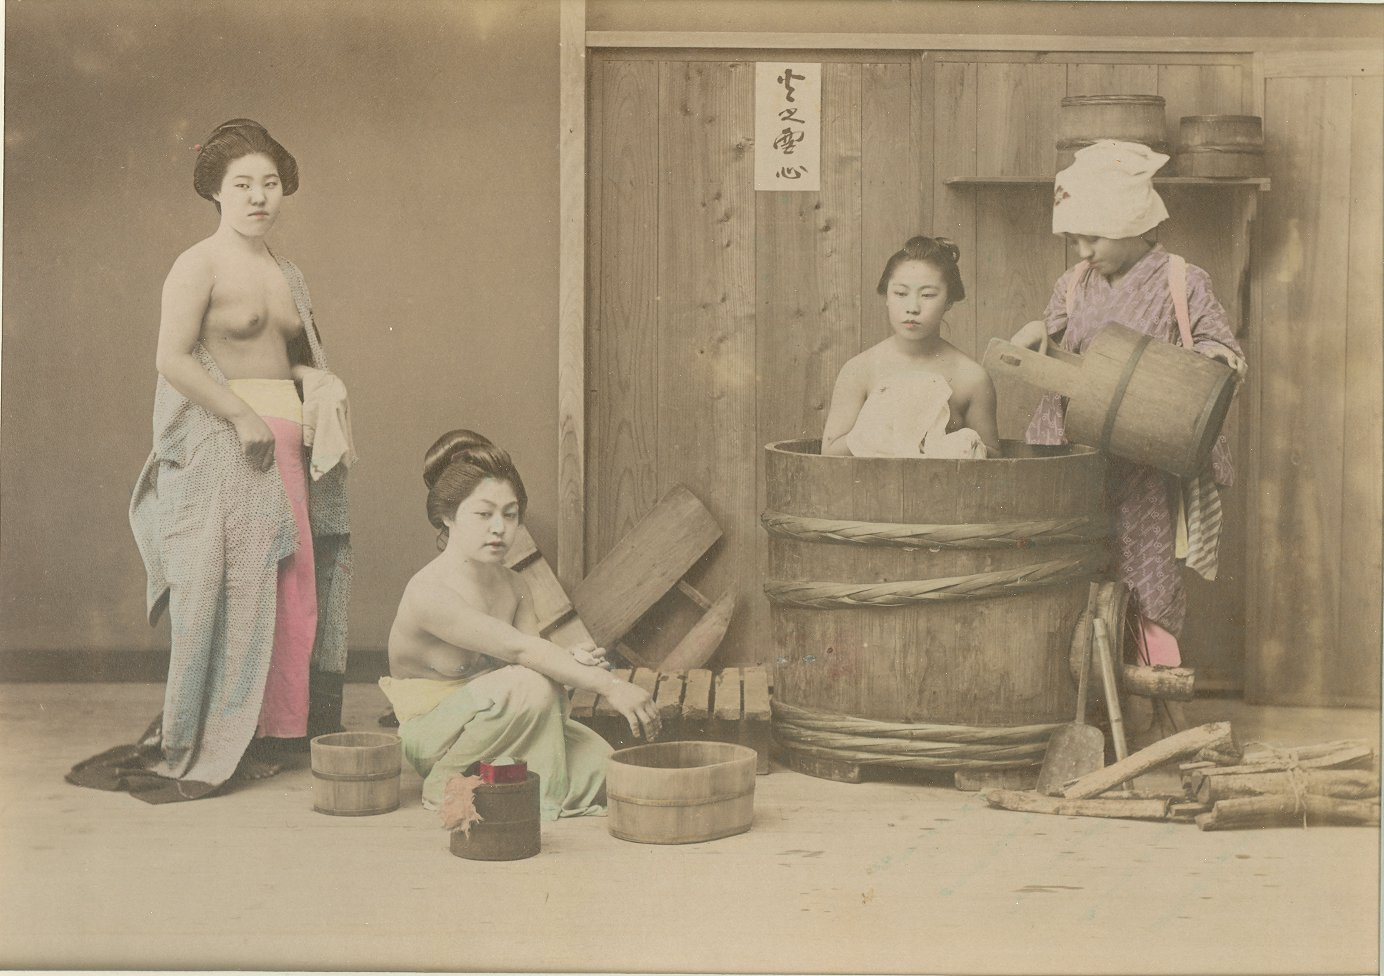 Impeccable Bath Japanese Bath Century Original Photographs Japanese Bath House Ago Japanese Bath House Sf houzz-03 Japanese Bath House